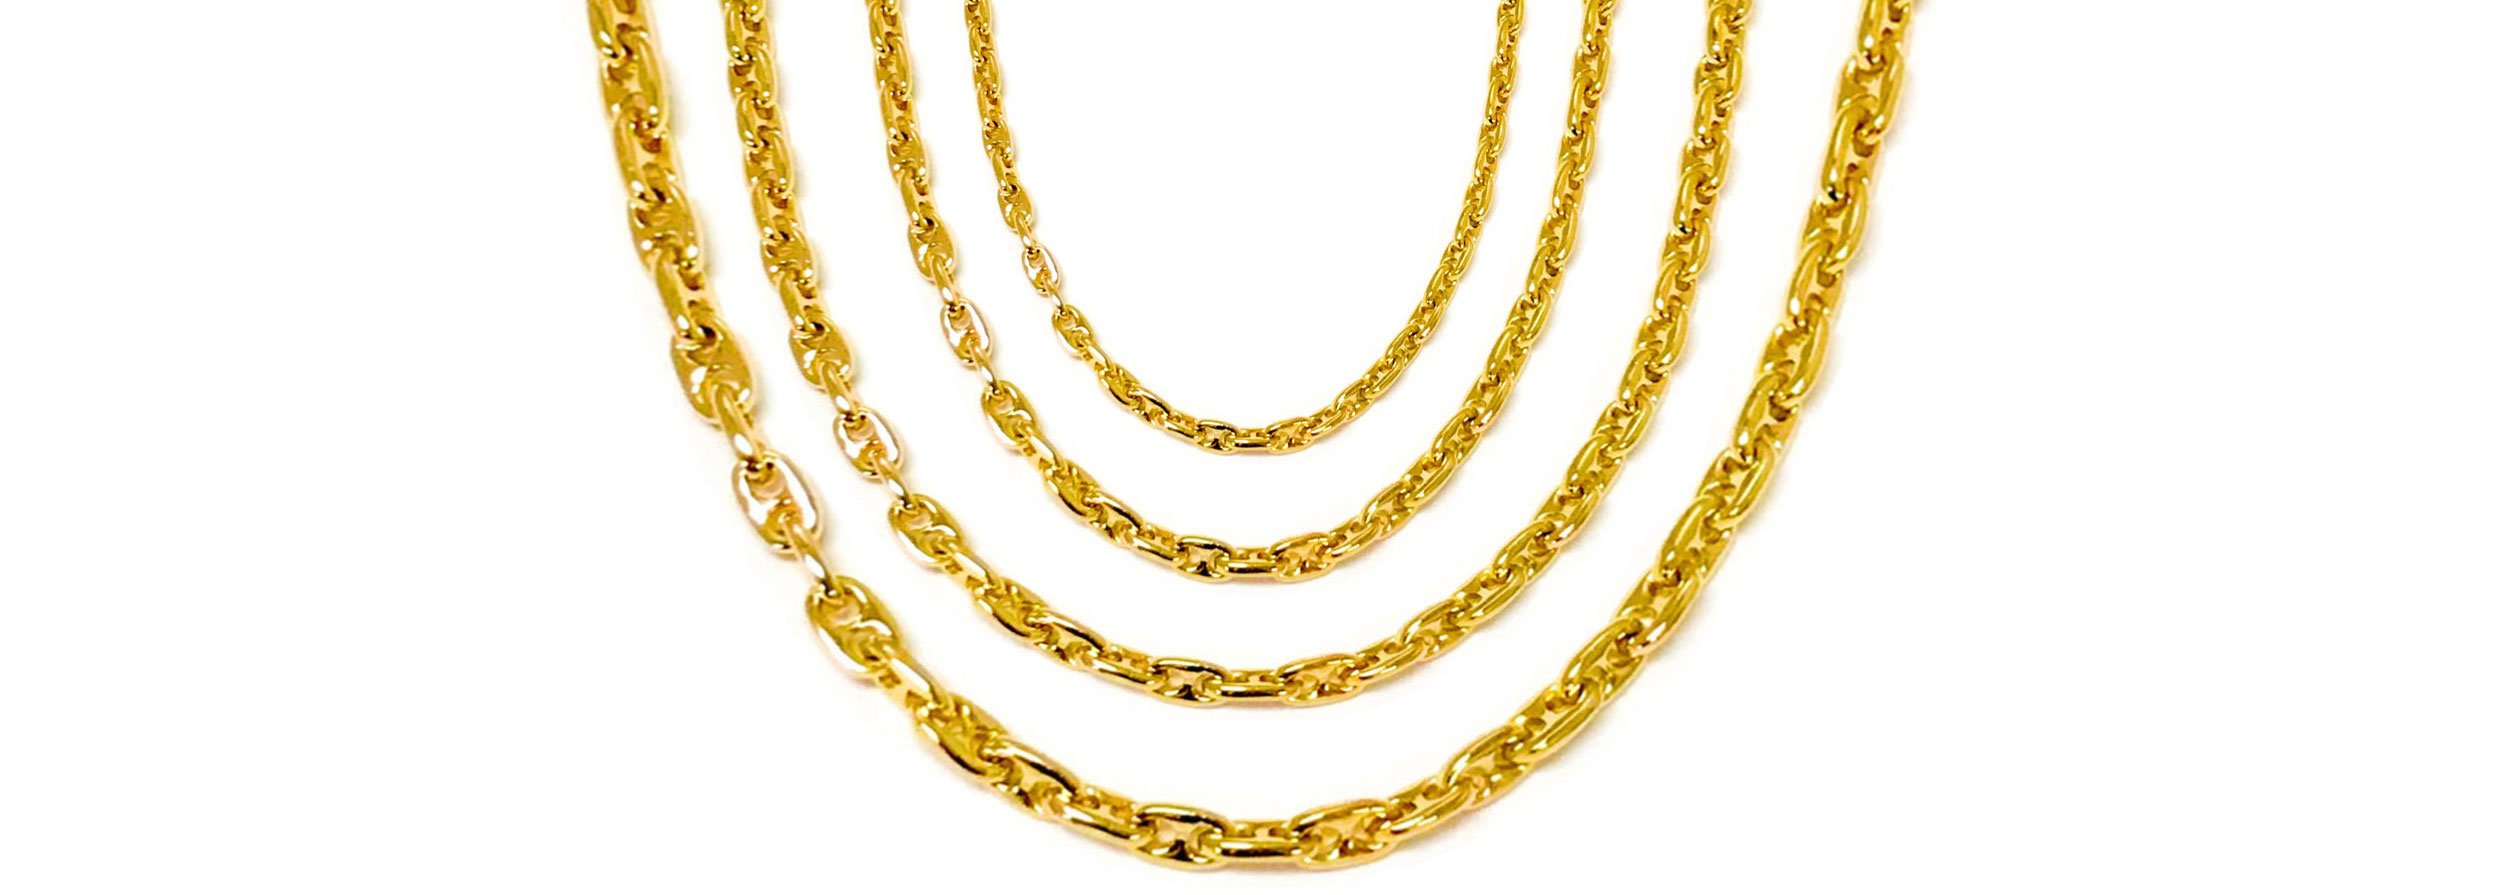 Anchor-Chain-Necklaces.jpg